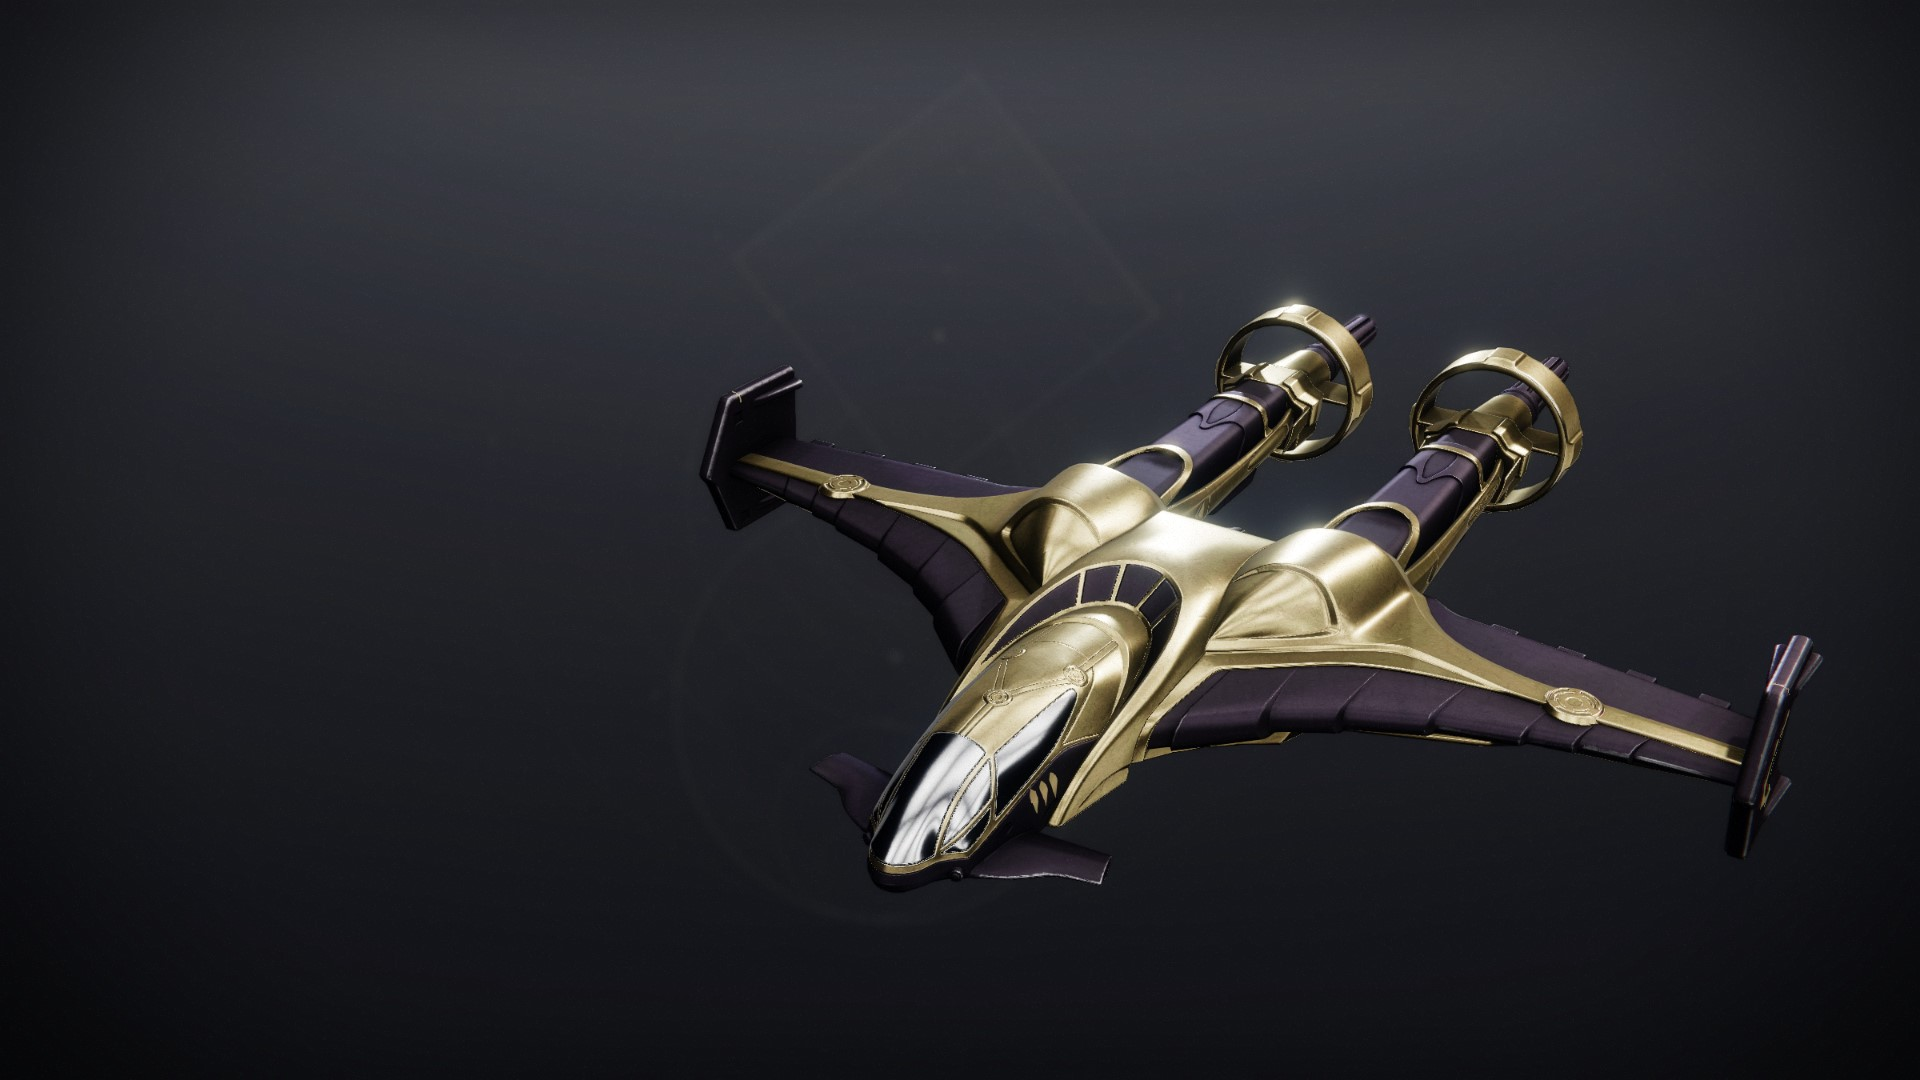 An in-game render of the Centerfire.